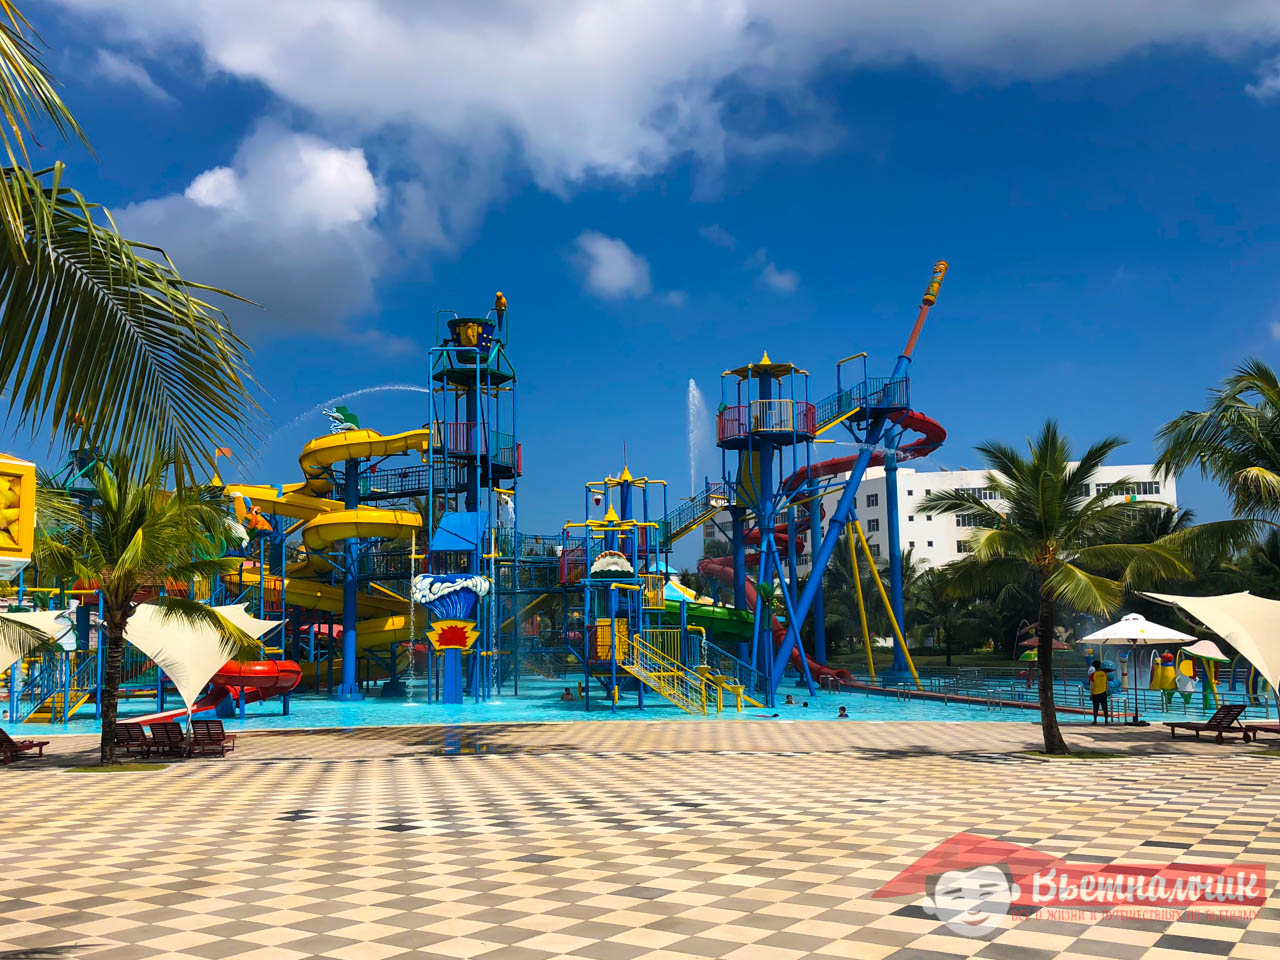 Waterpark in the entertainment park Winperl (Phu Quoc, Vietnam)